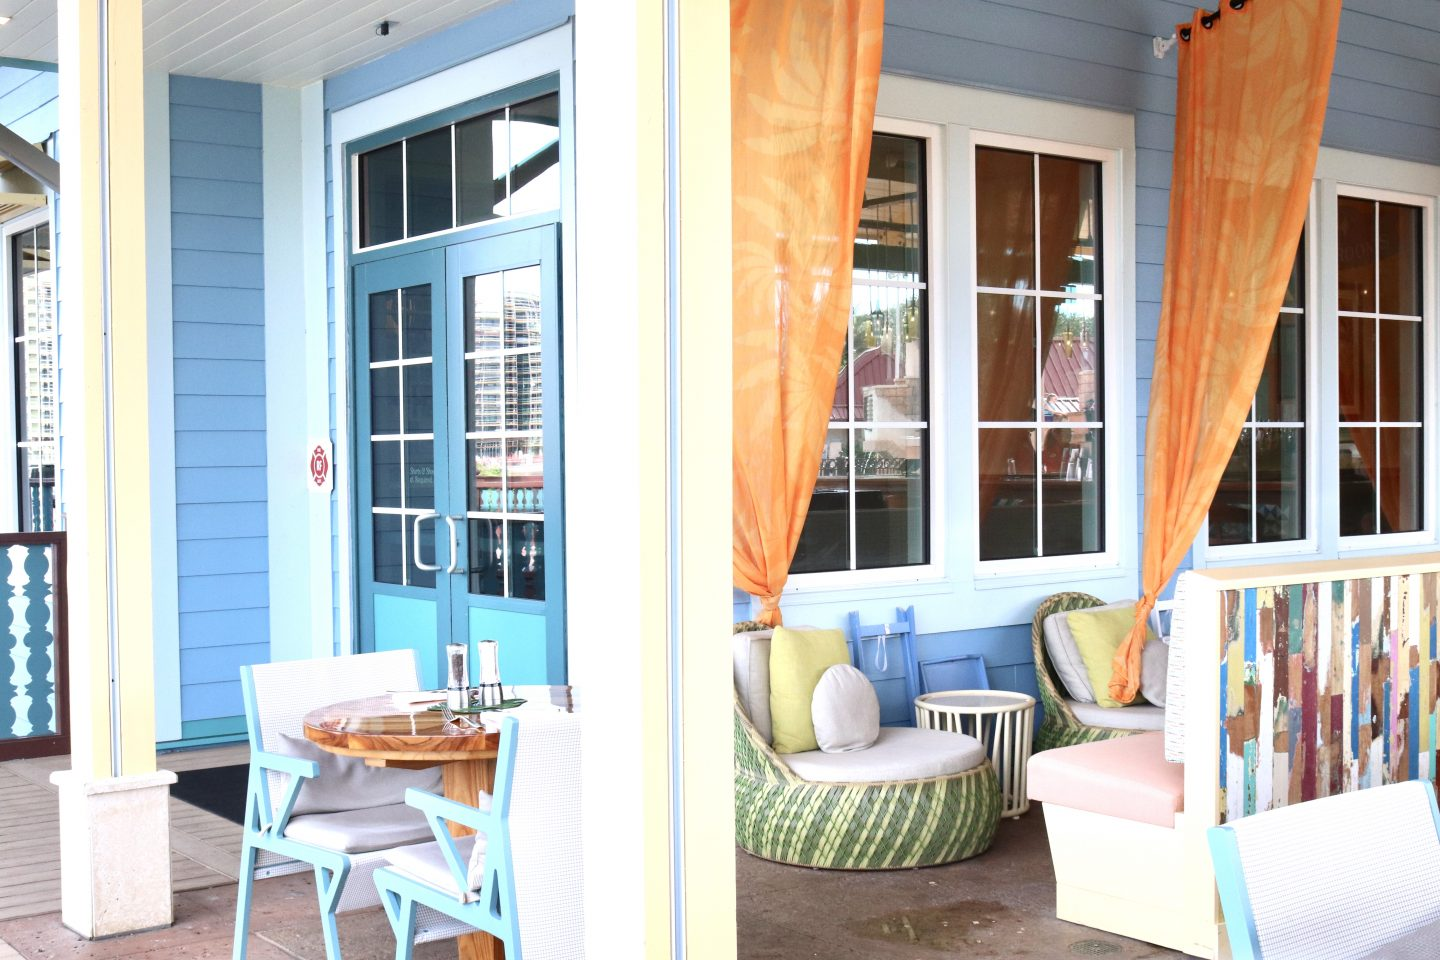 Disney Caribbean Beach Resort Review, CBR, Caribbean Beach Resort renovation, Disney Caribbean Beach Resort Disney, Disney moderate resort, disney moderate hotel, disney hotel, disney hotels, disney hotel reviews, check out Disney CBR, see all the new things at disney caribbean beach resort, staying on property at walt disney world